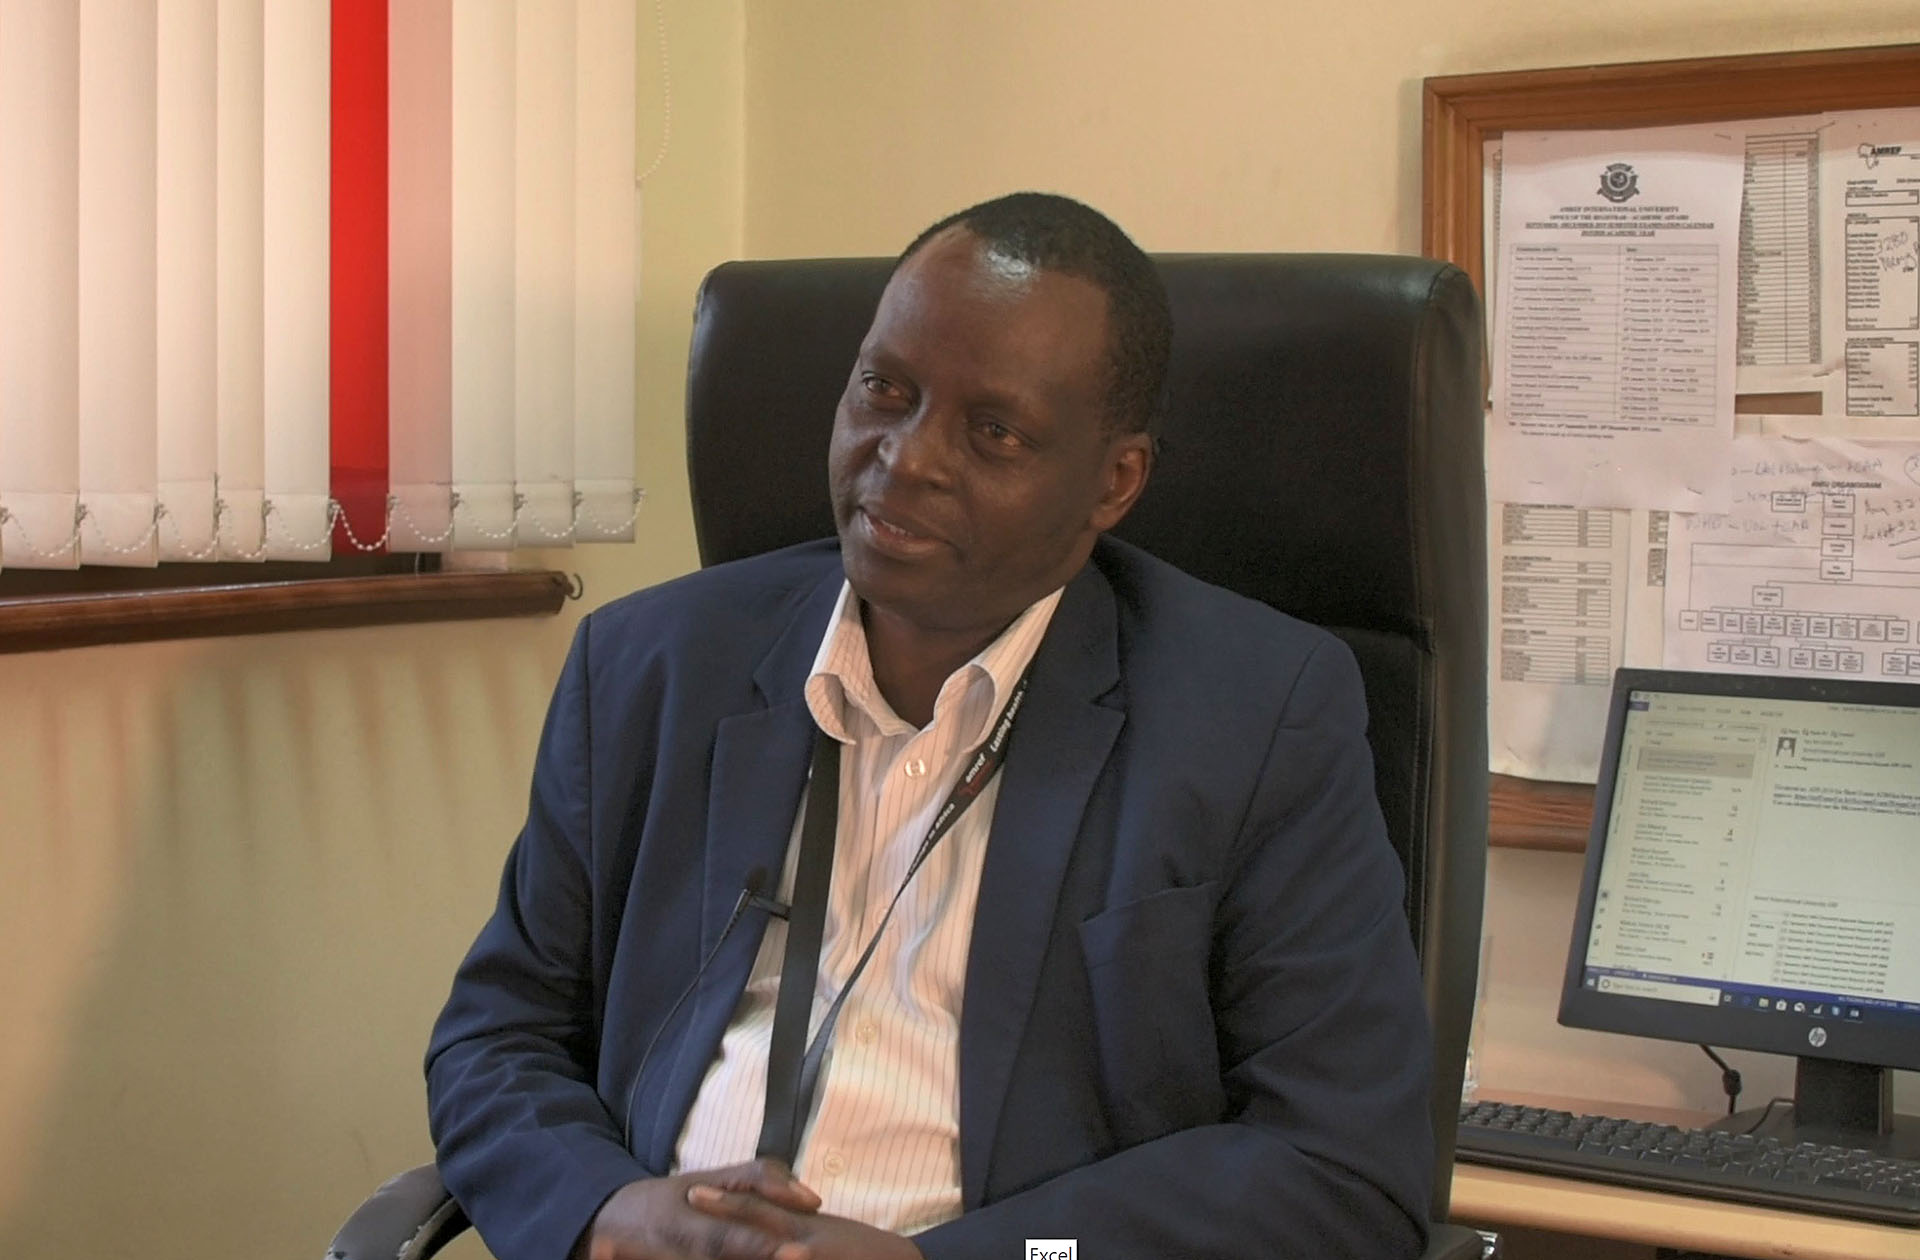 Dr James Mwitari, Dean of the School of Public Health at AMREF International University, Nairobi, who is leading the development and scaling up of the household energy training programme across the country.